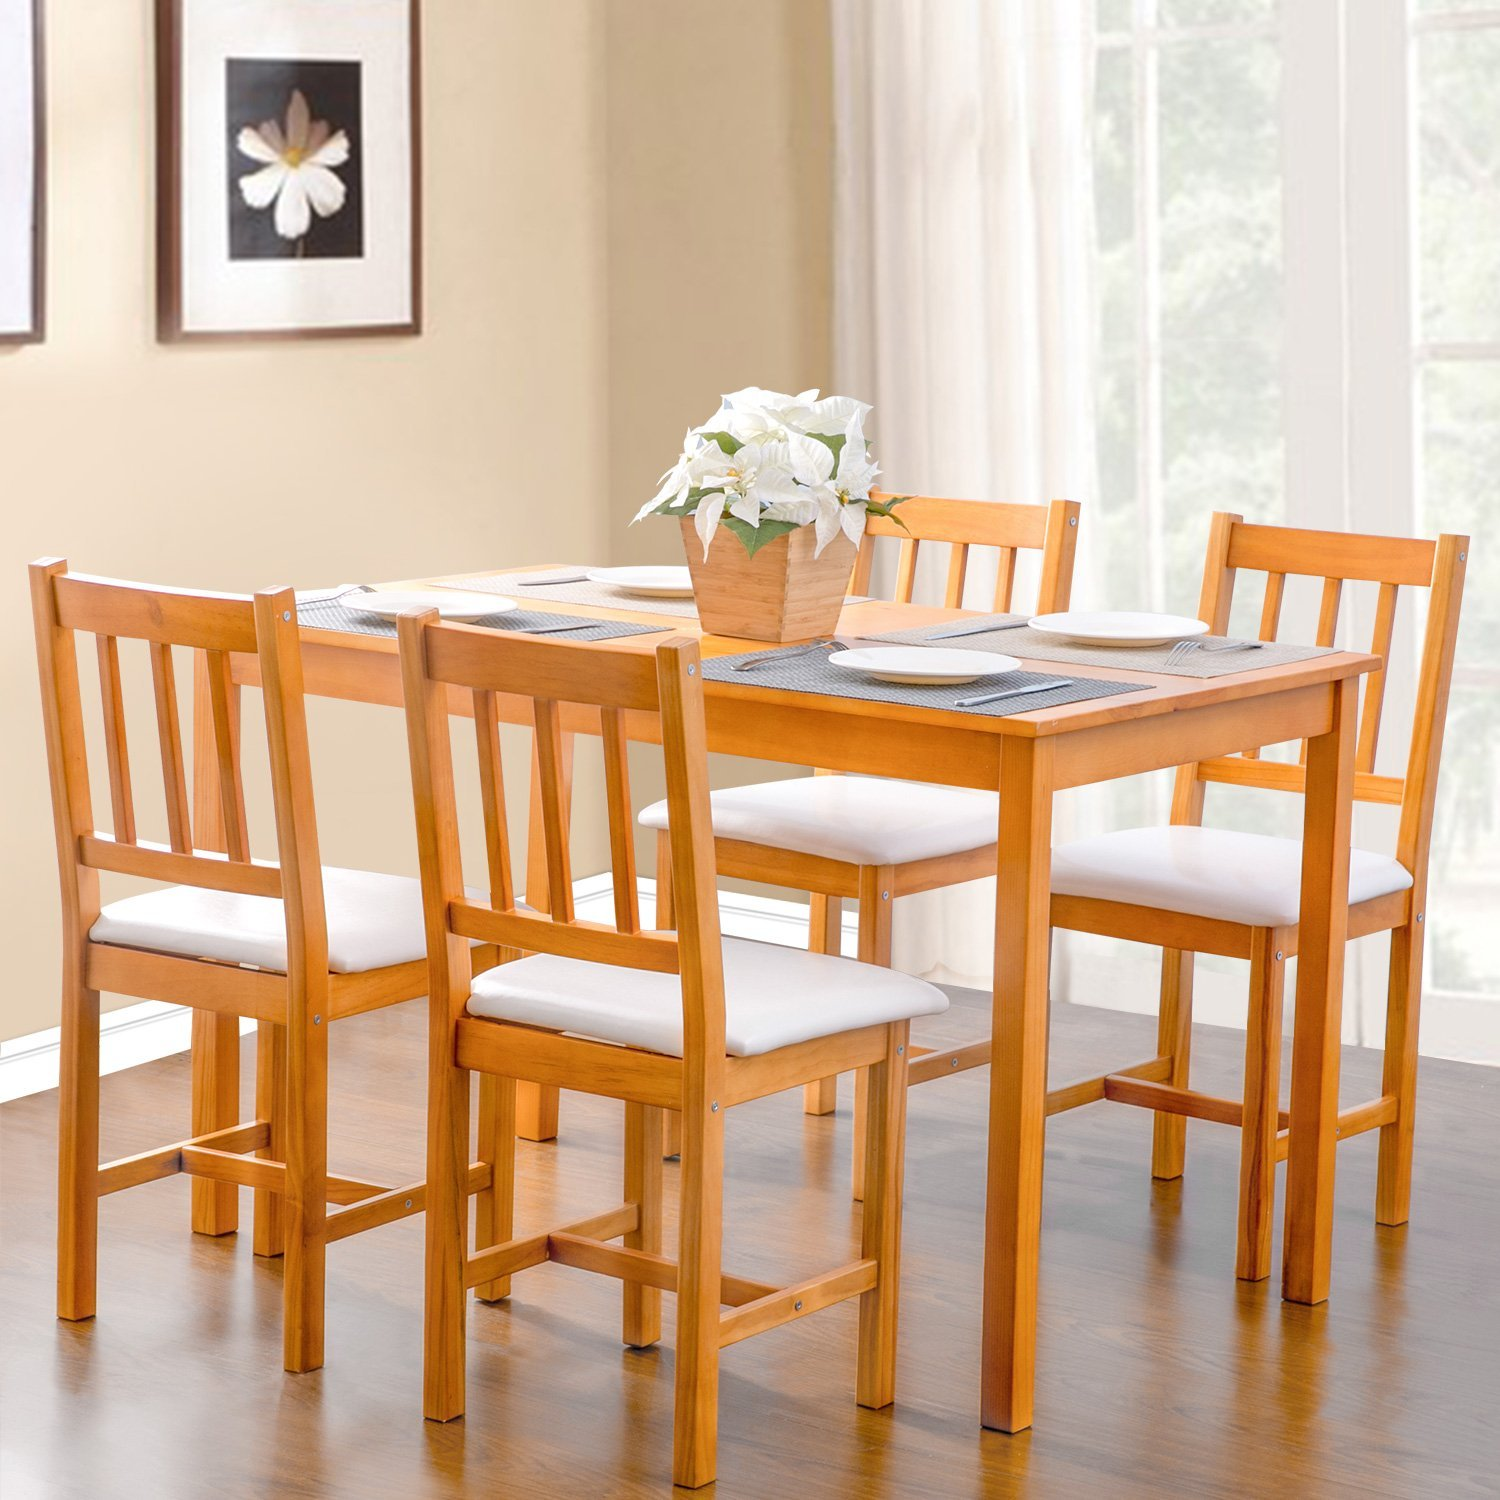 Cheap Oak Dining Chairs Find Oak Dining Chairs Deals On Line At